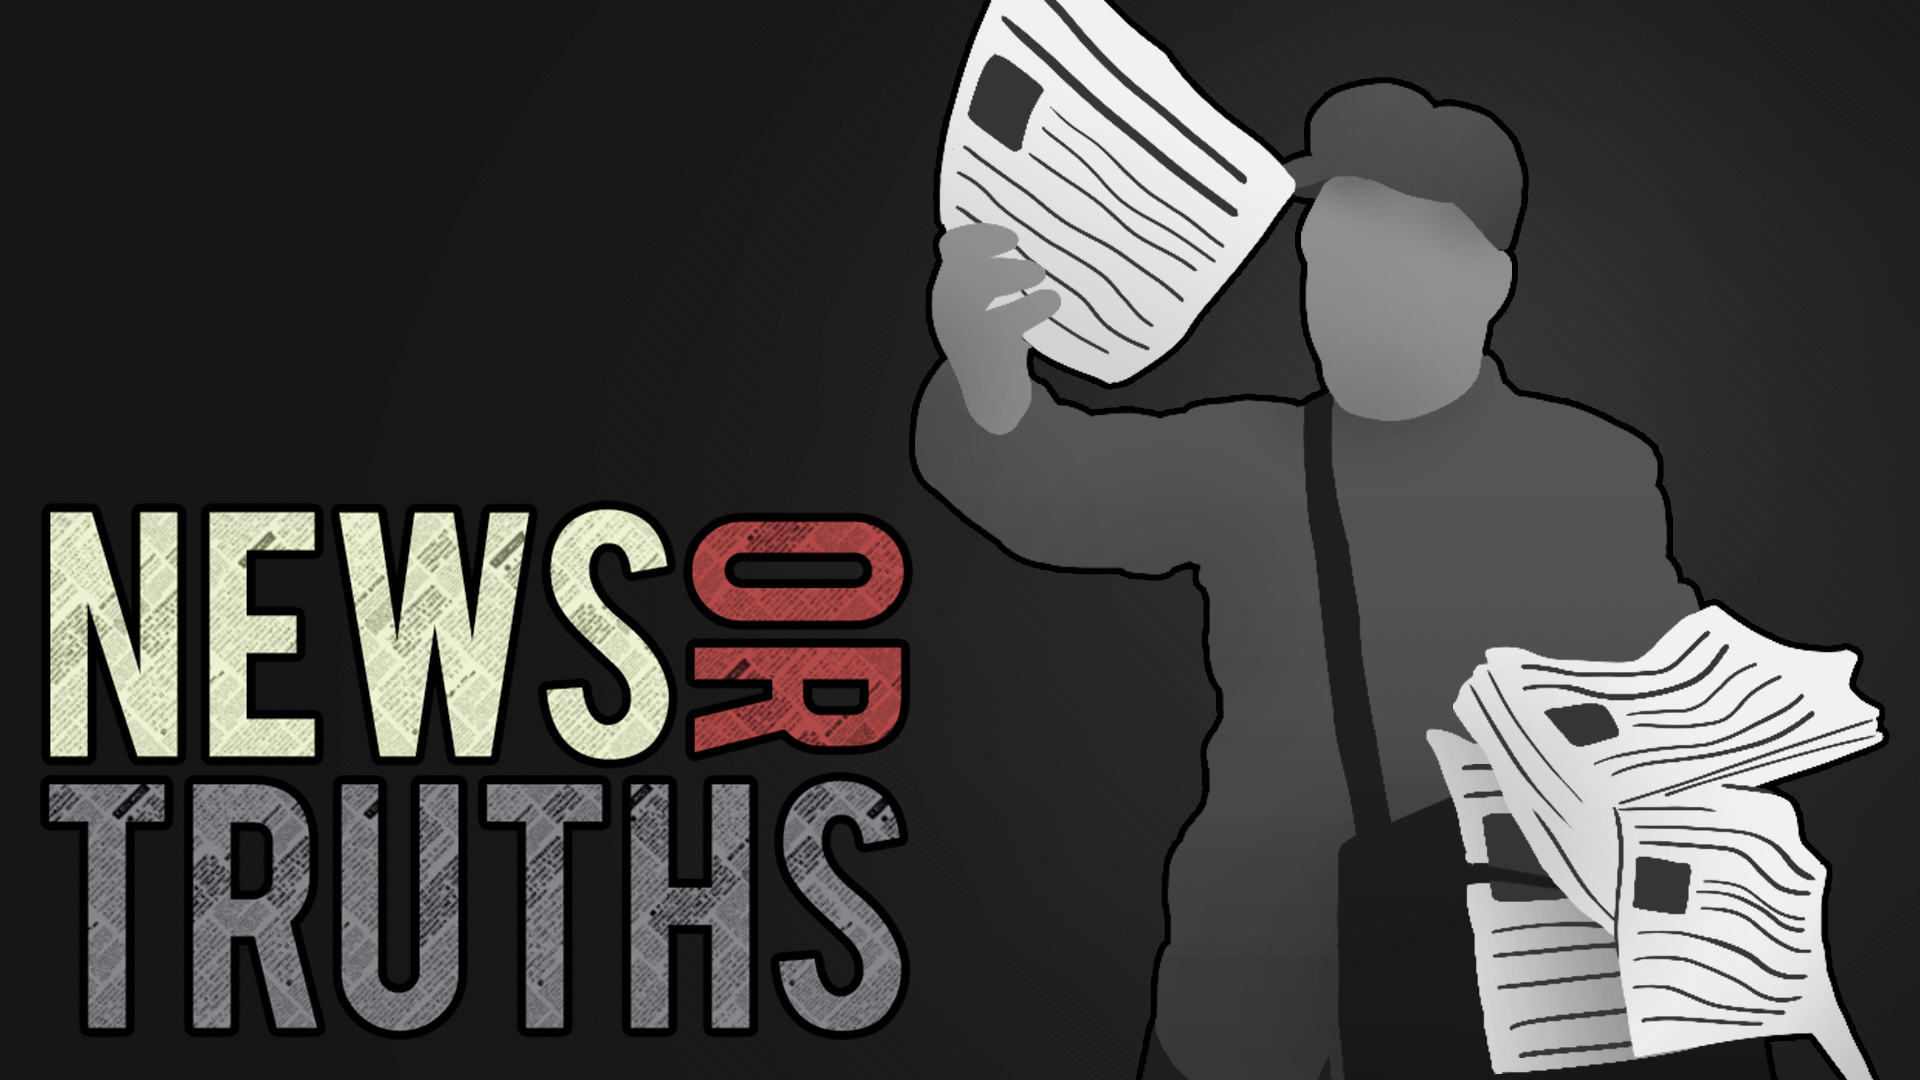 News or Truths